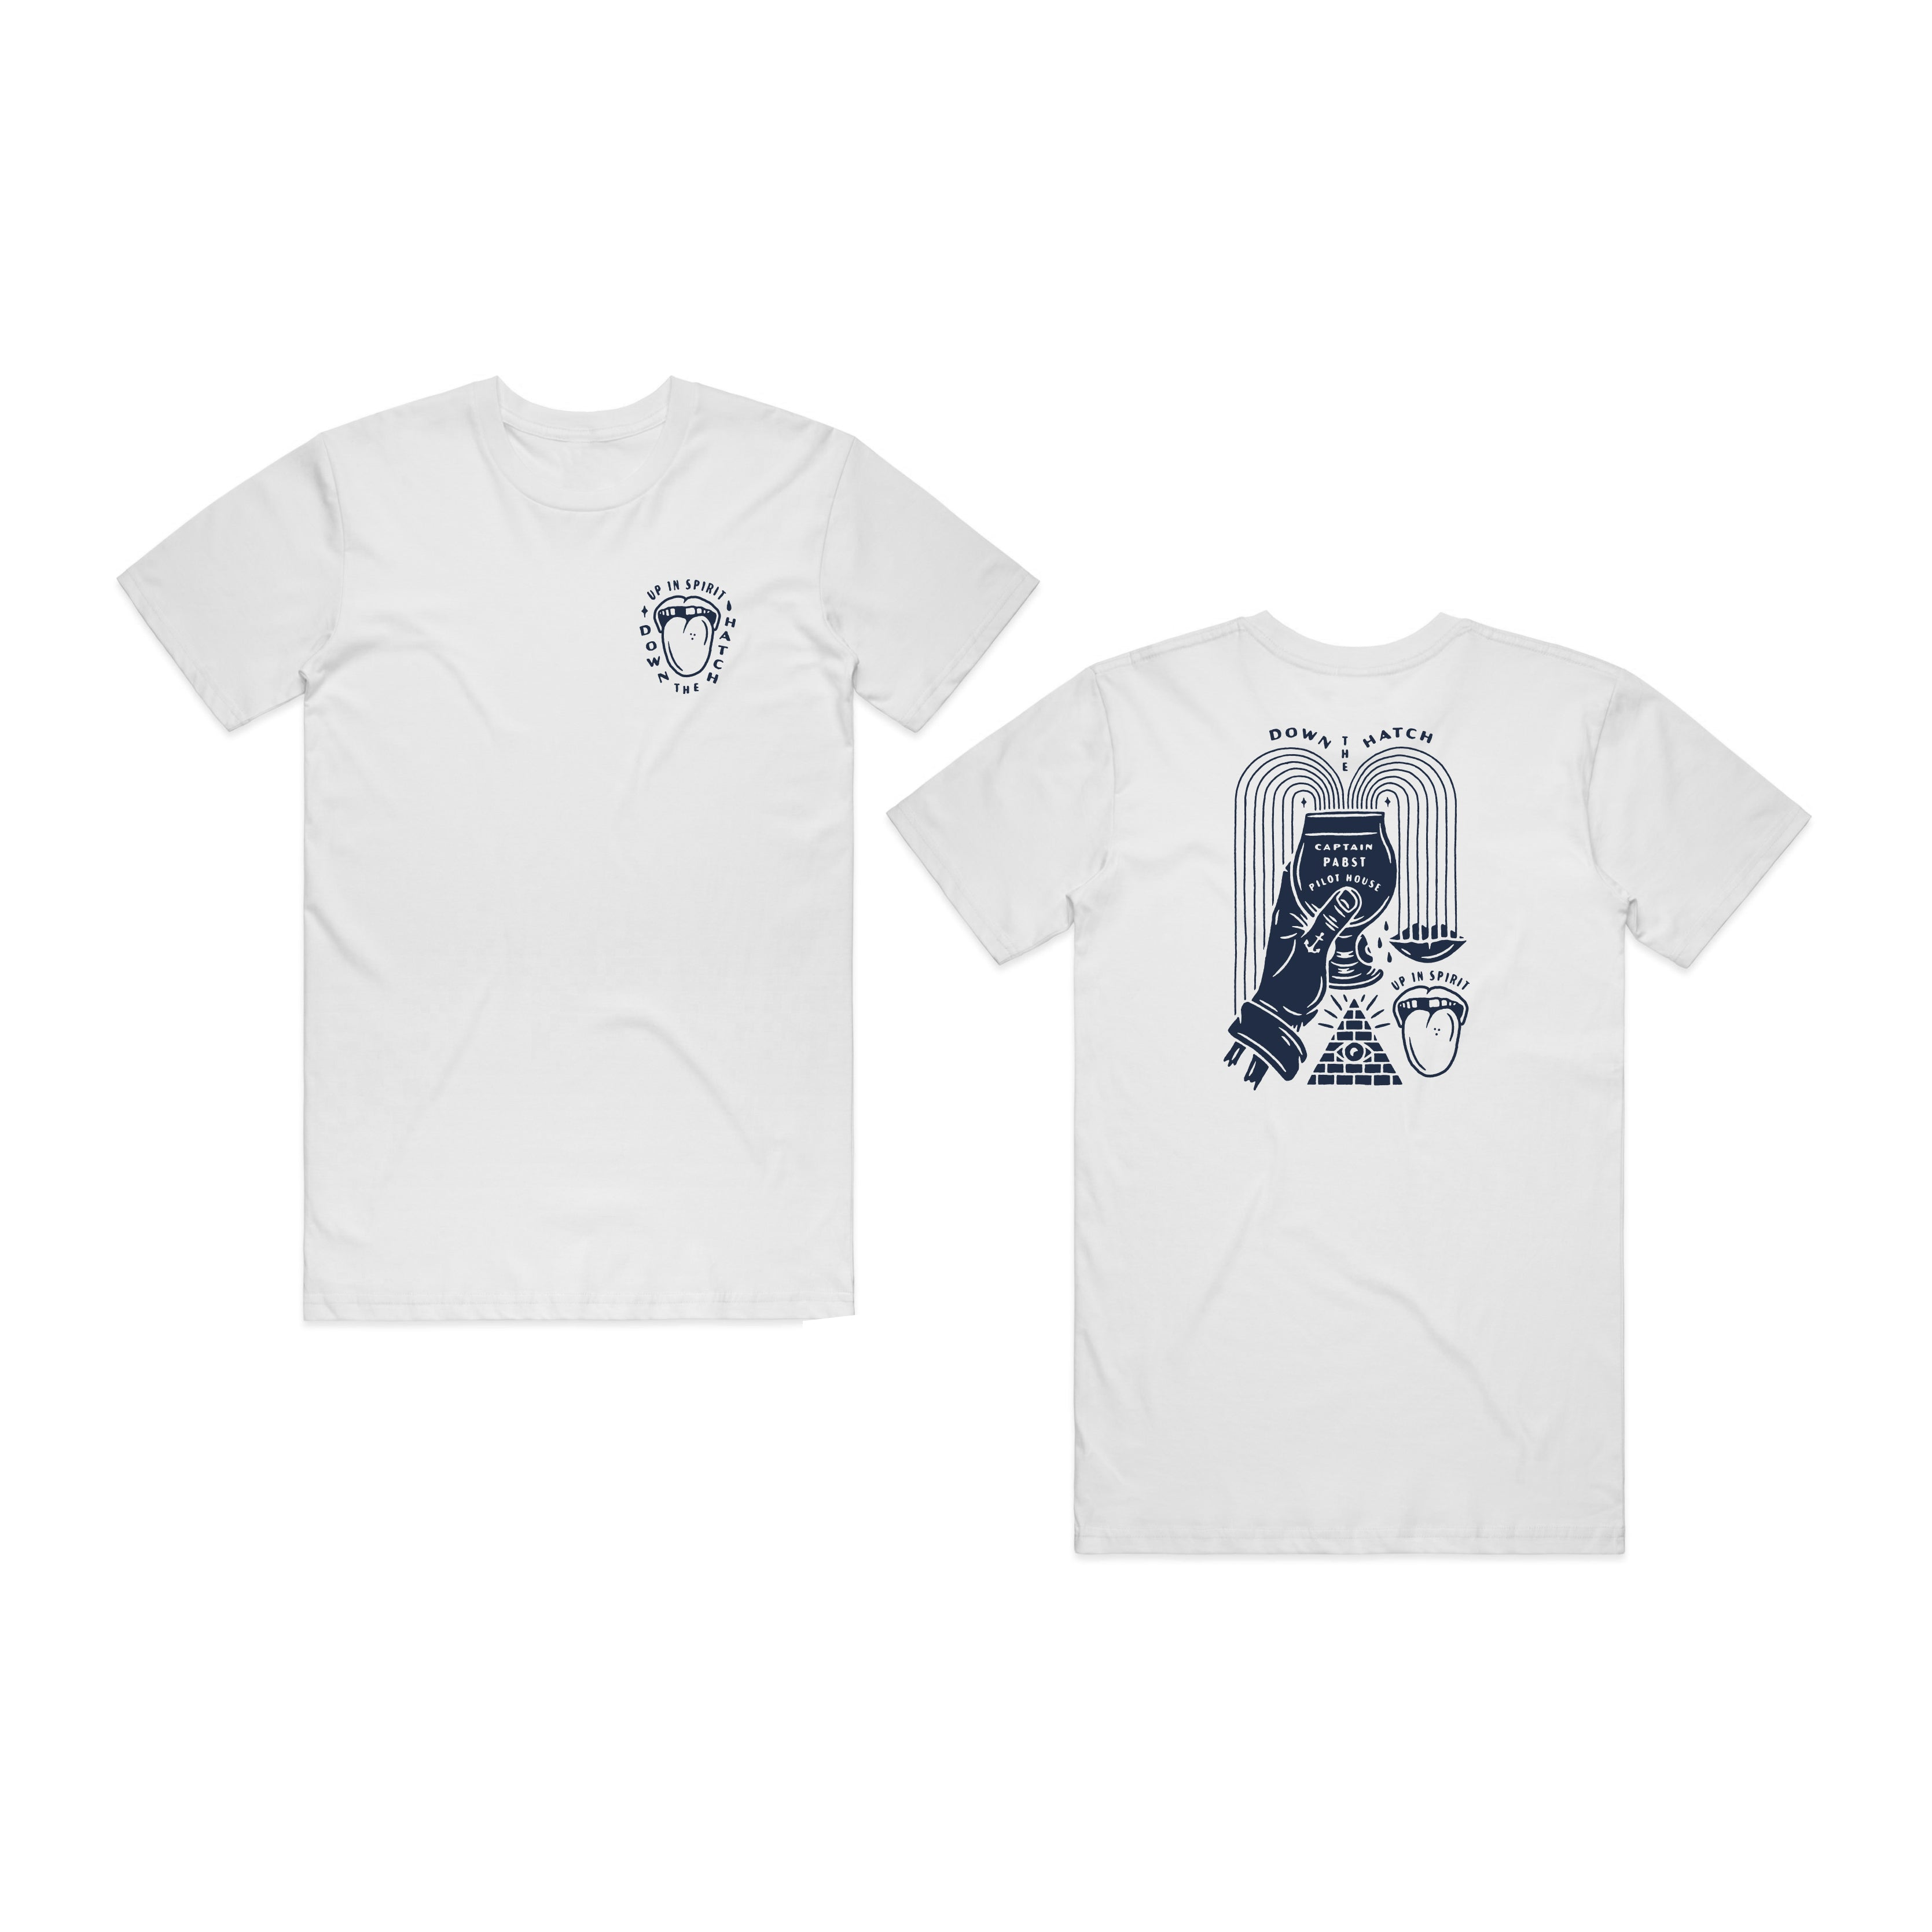 INDUSTRY SUPPORT TEE - (WHITE)